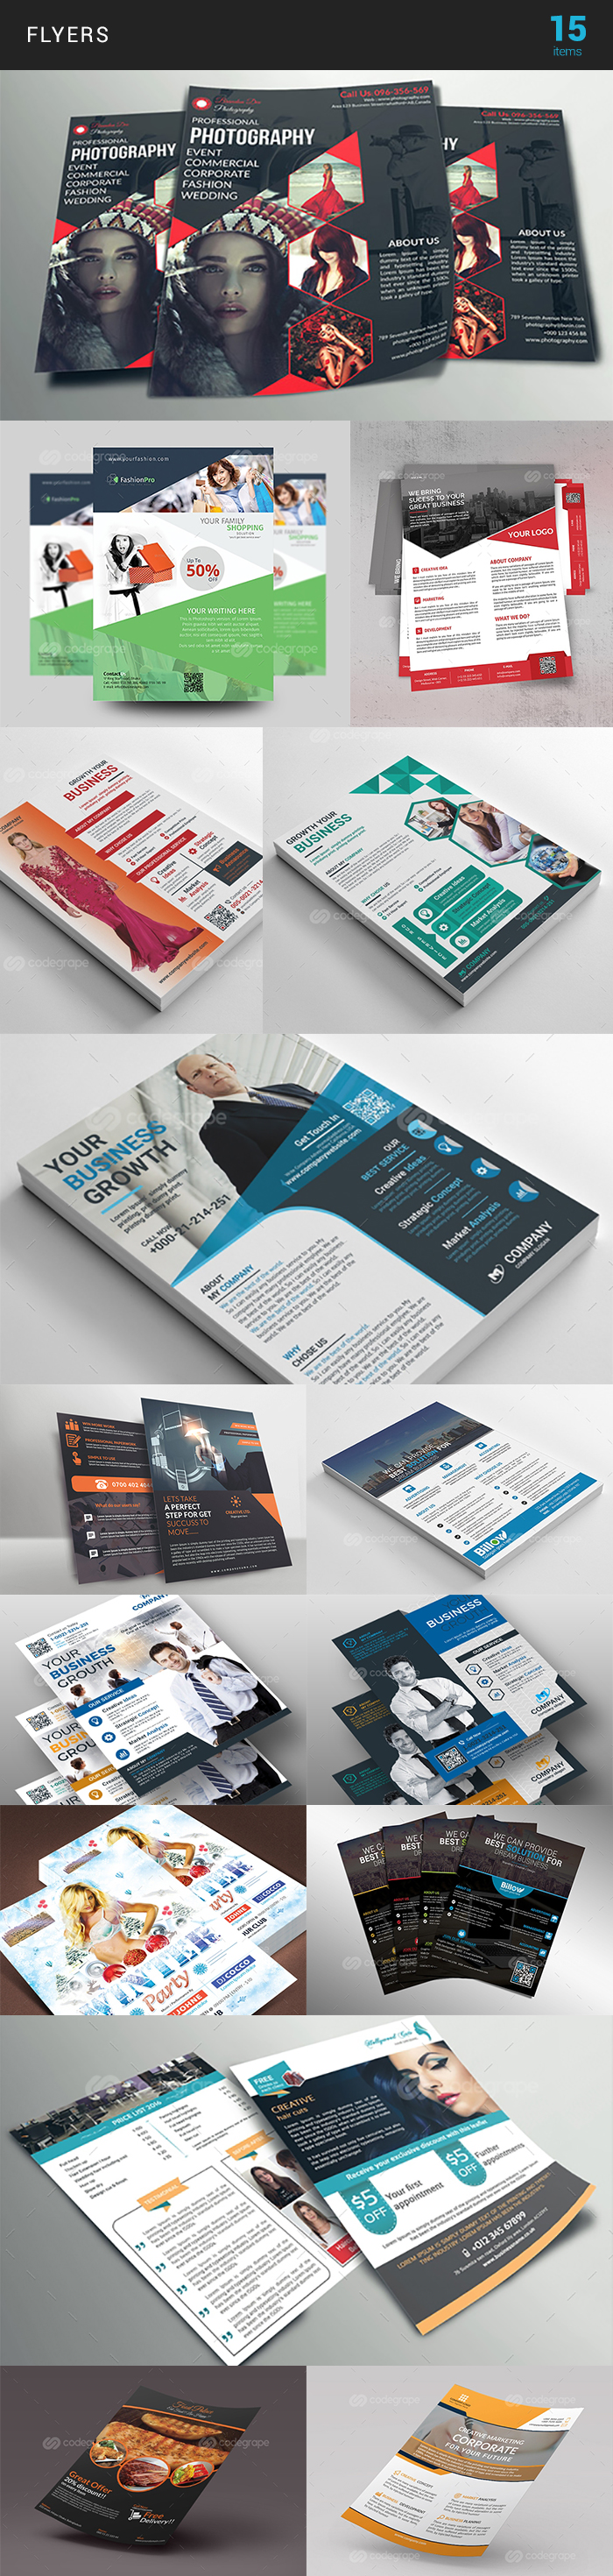 Elegant Print Templates Bundle with 100 Items - Only $19 - flyer